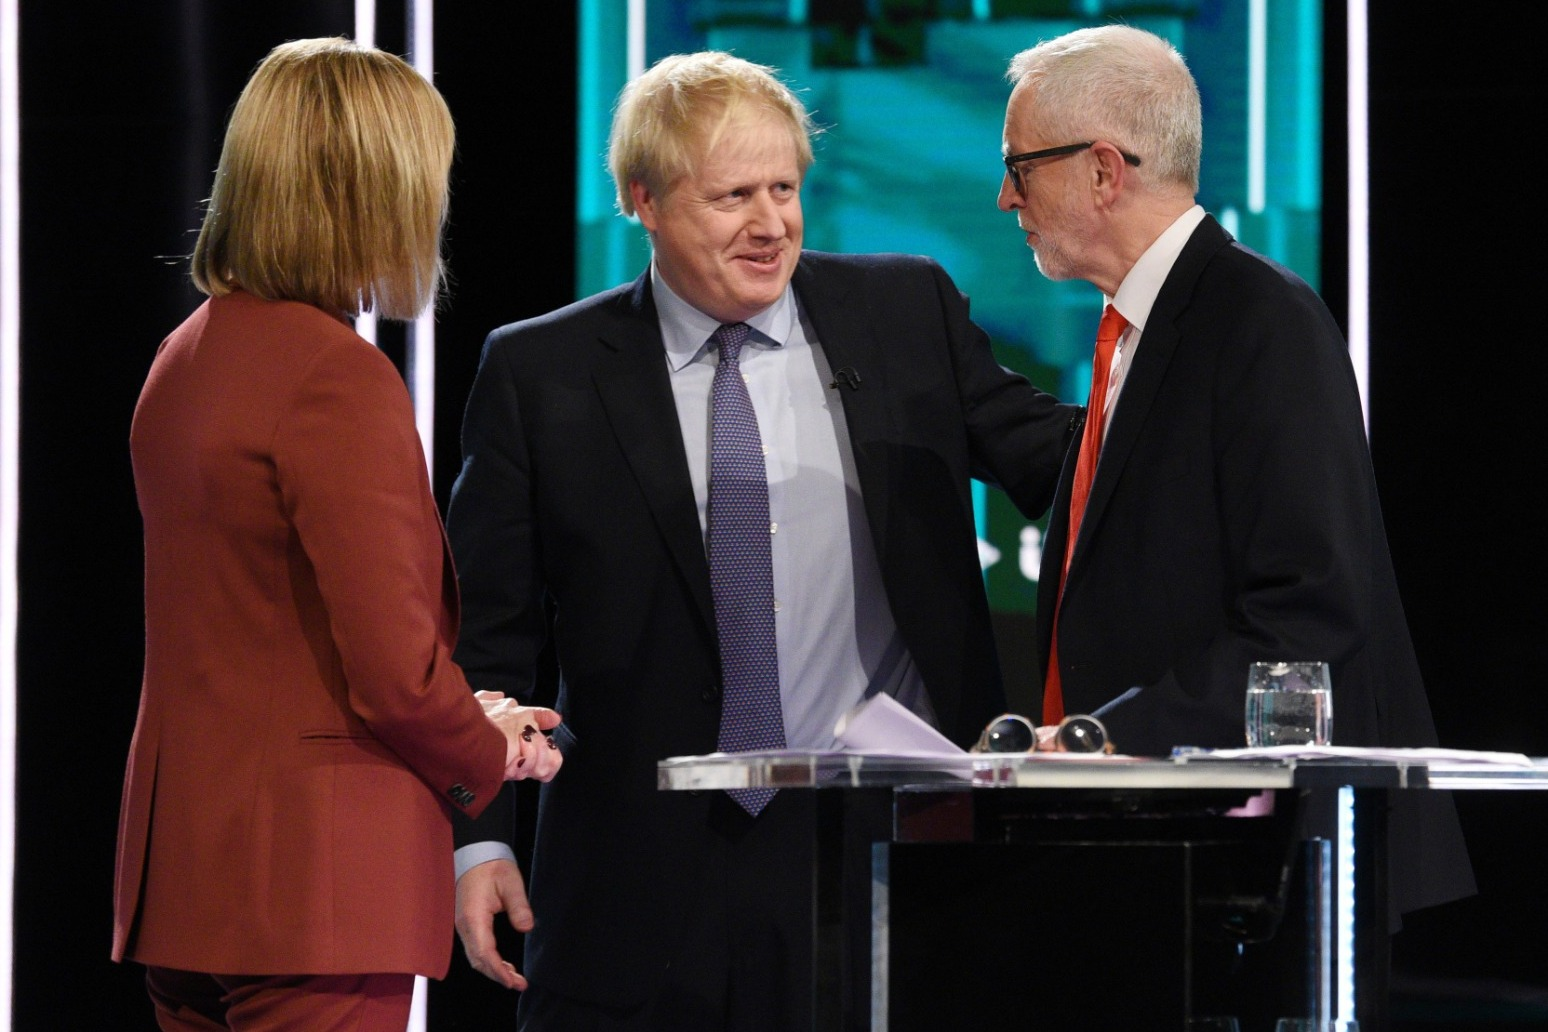 LEADERS PREPARE FOR TV QUESTION TIME